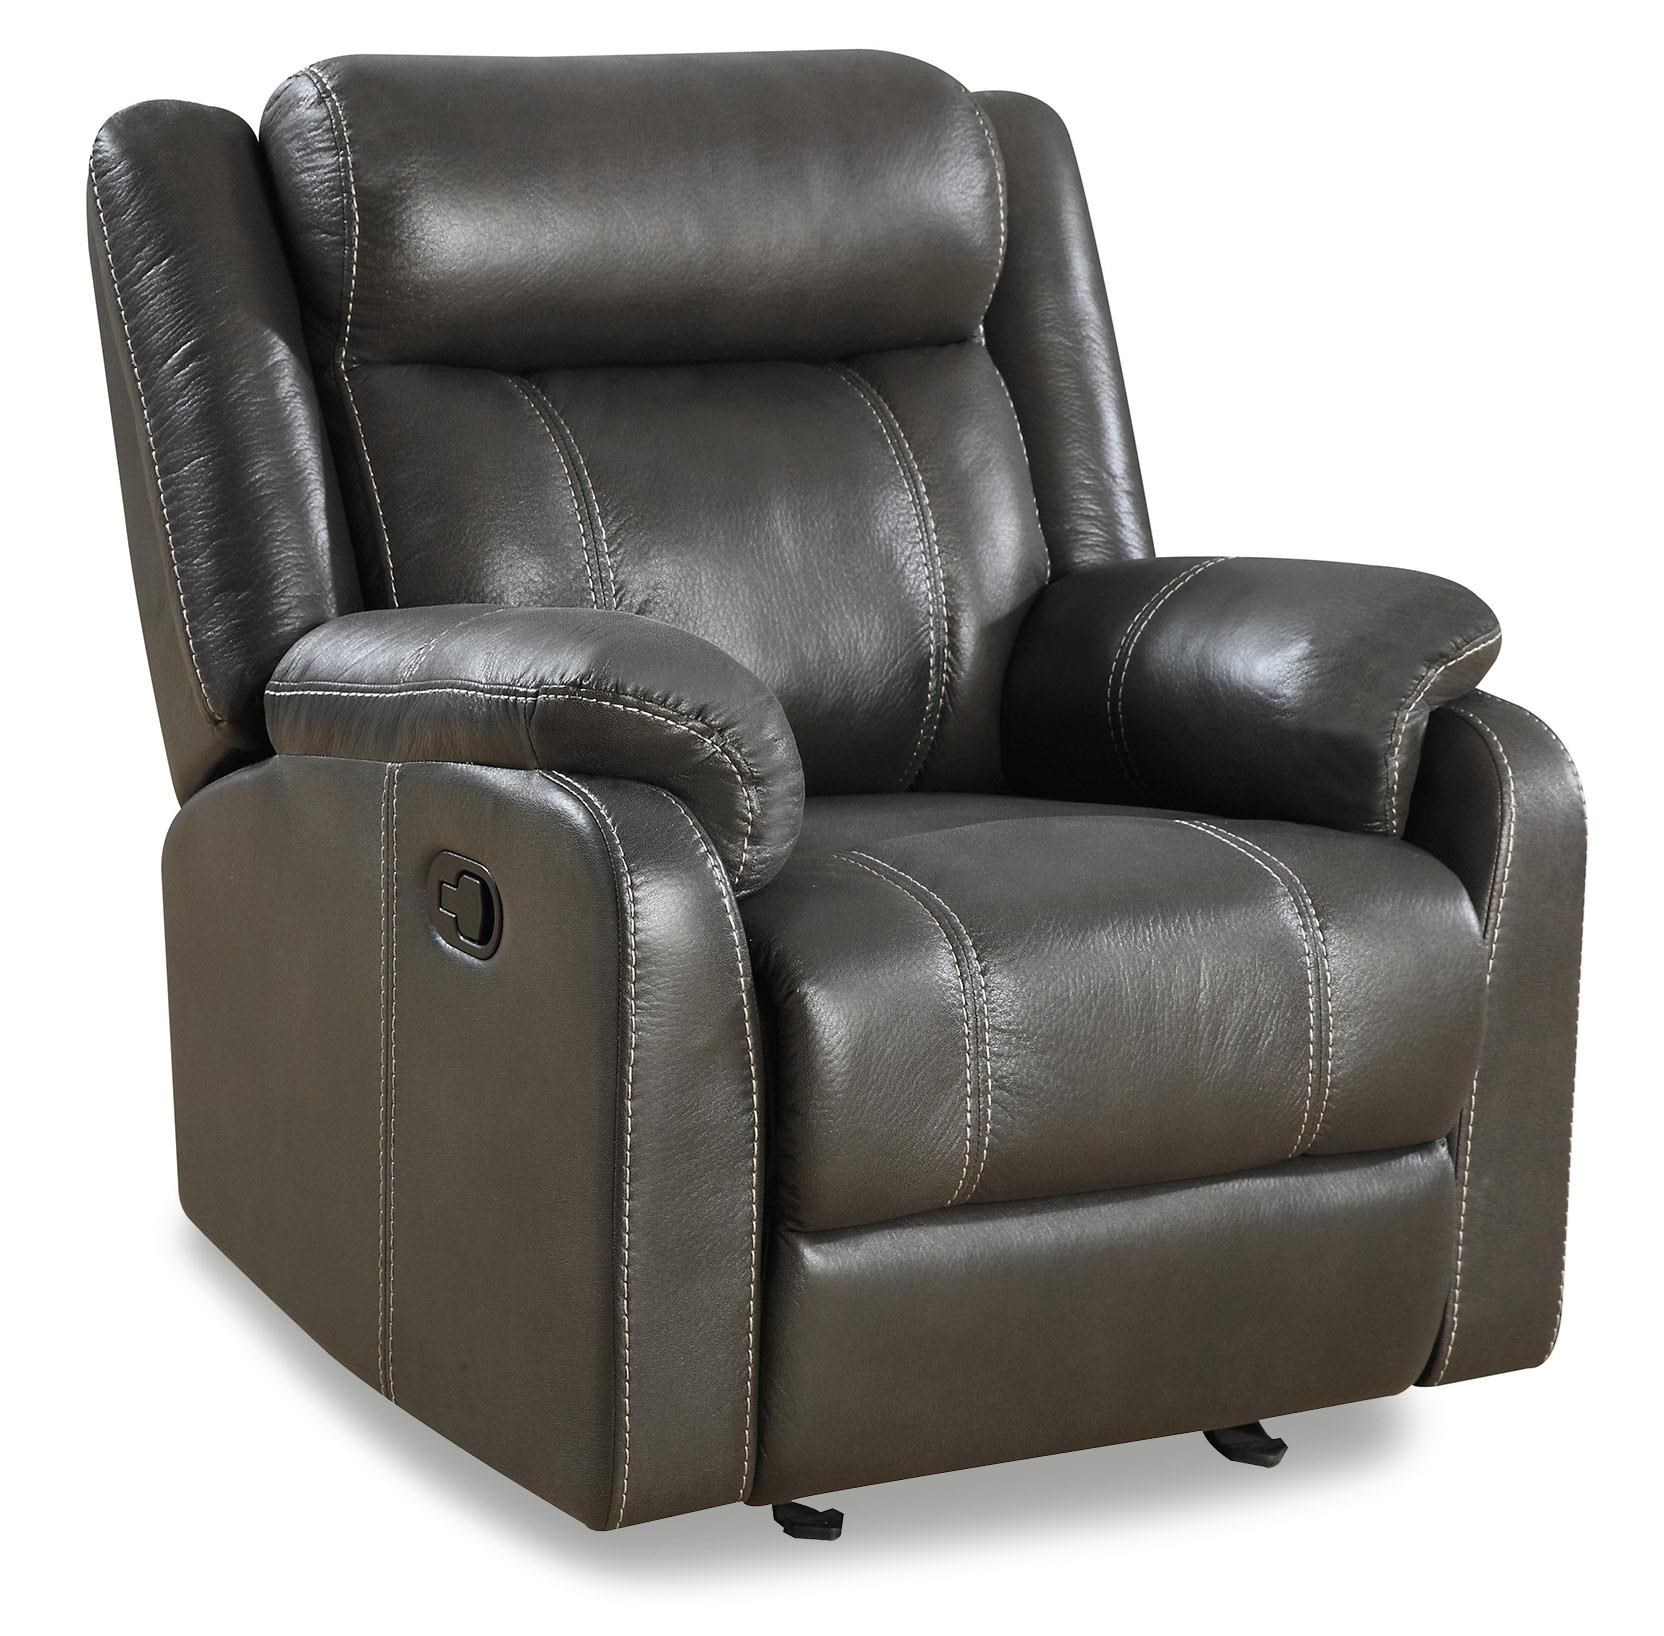 Gliding Recliner Chair